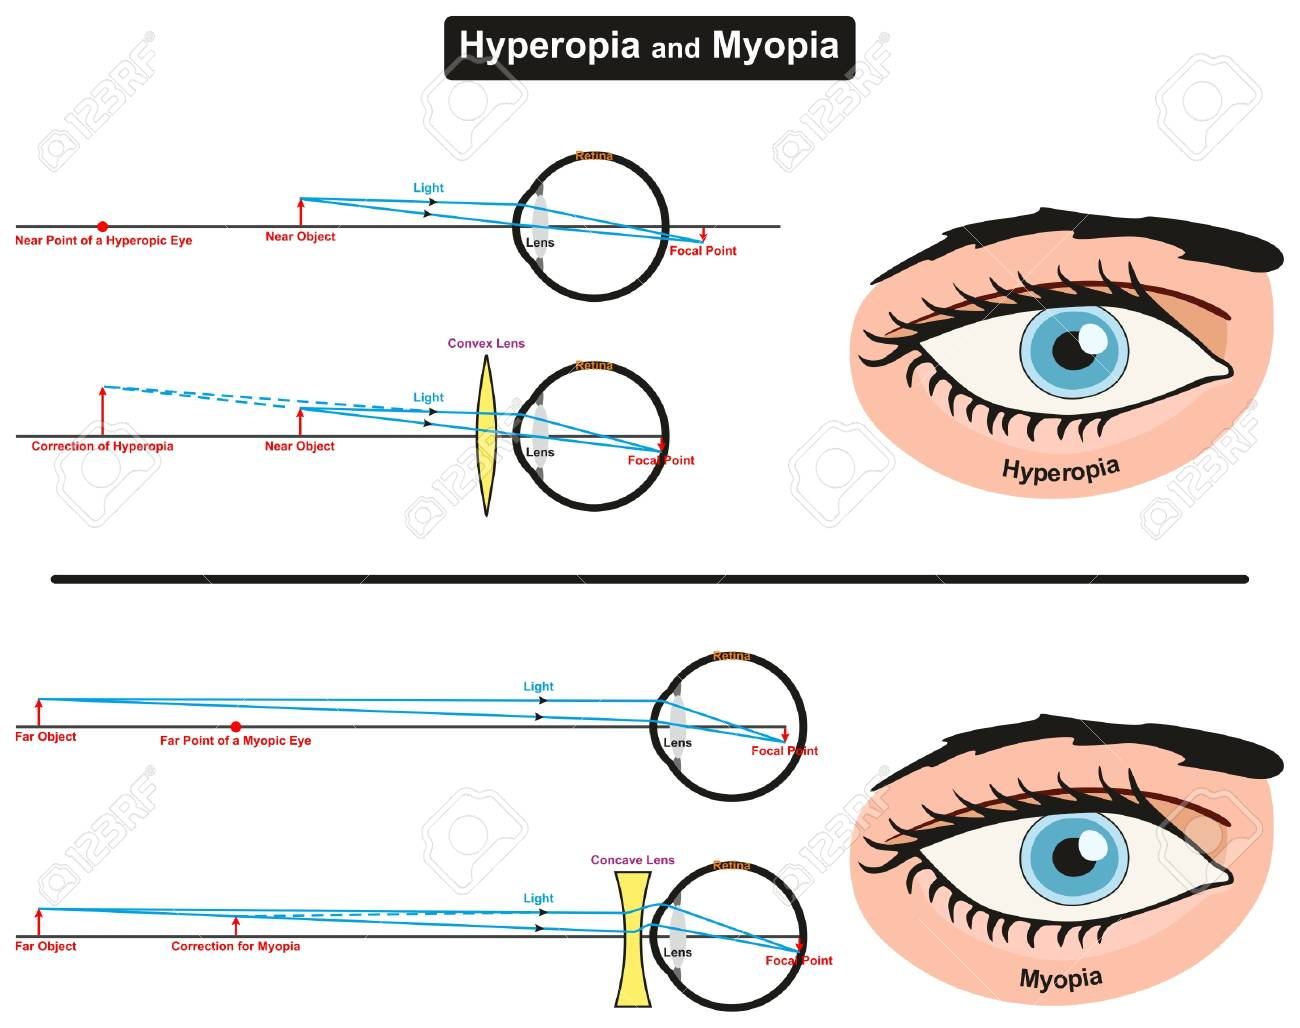 hight resolution of hyperopia and myopia infographic diagram showing comparison between them including far and near object focal points